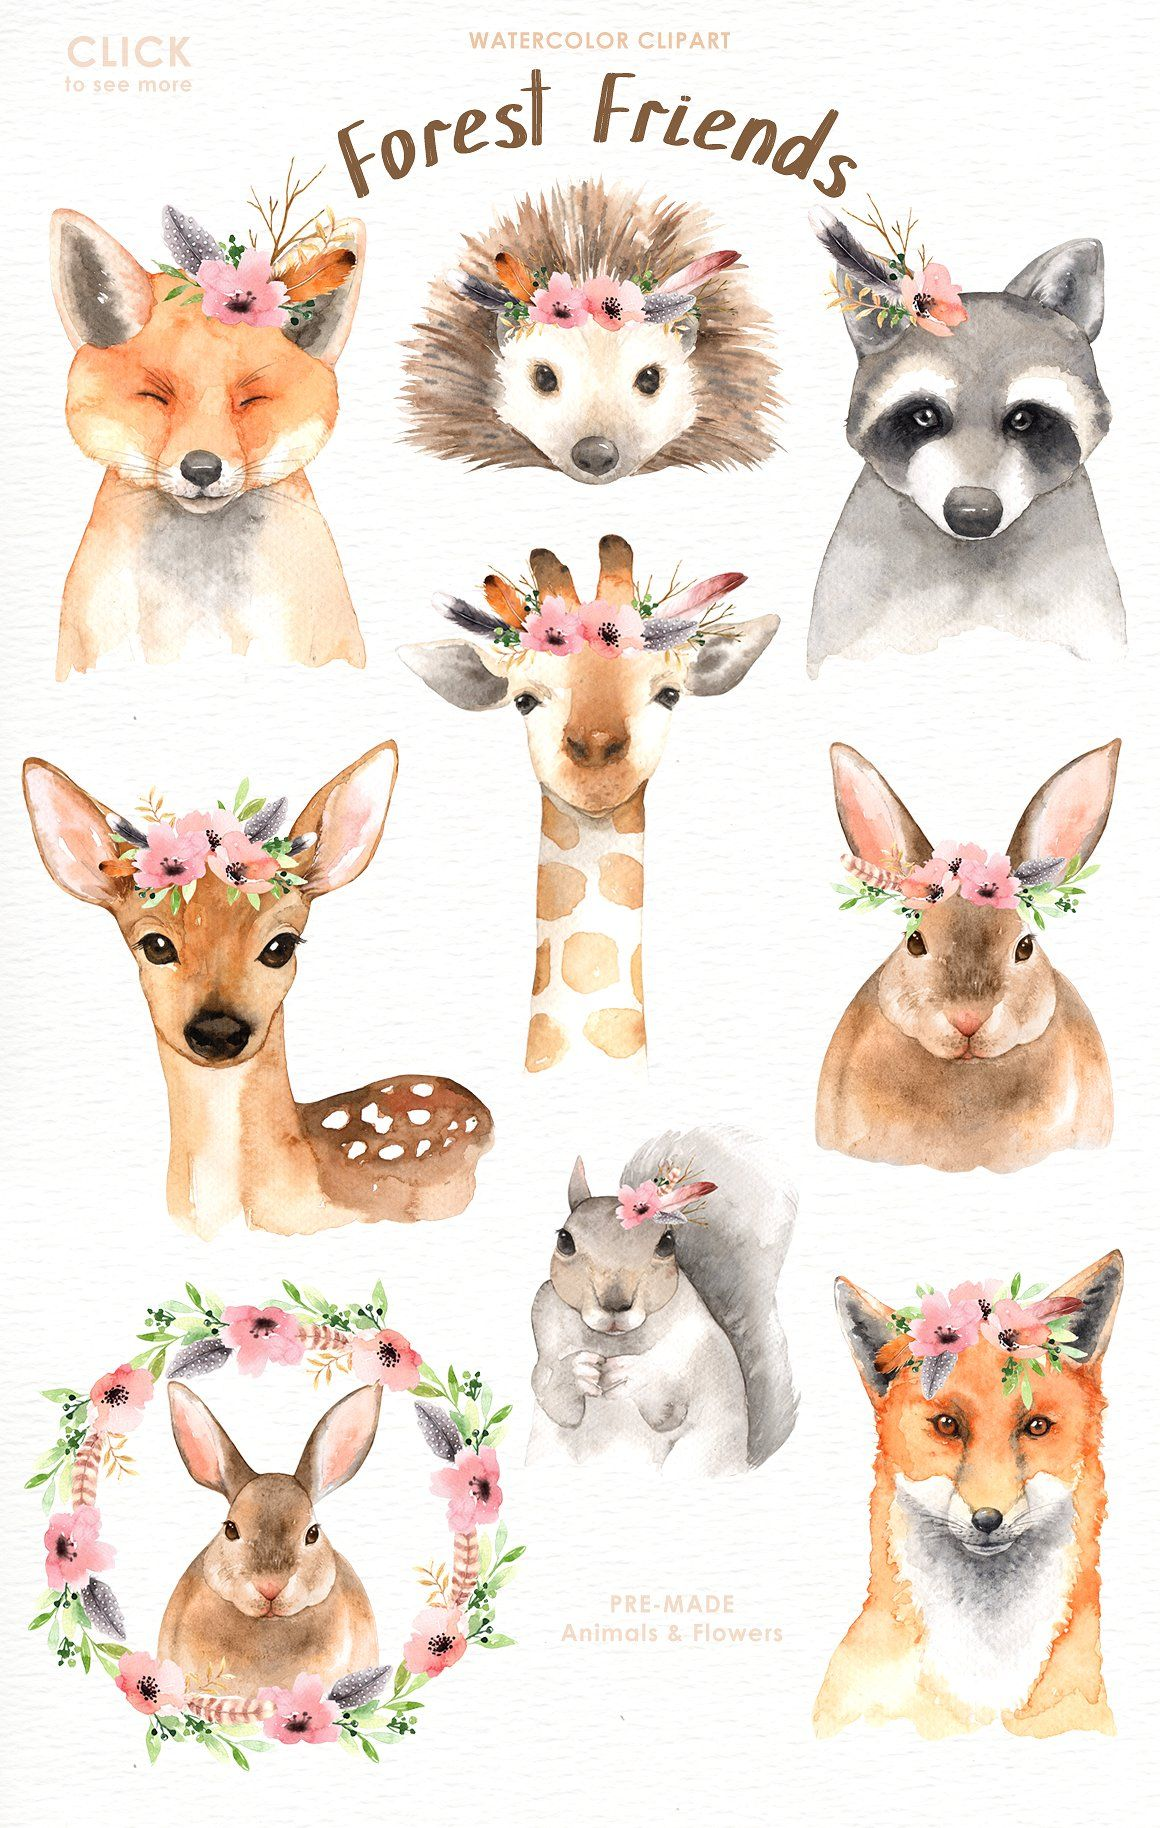 Photo of Forest Friends Watercolor Clip Art by everysunsun on Creative Market